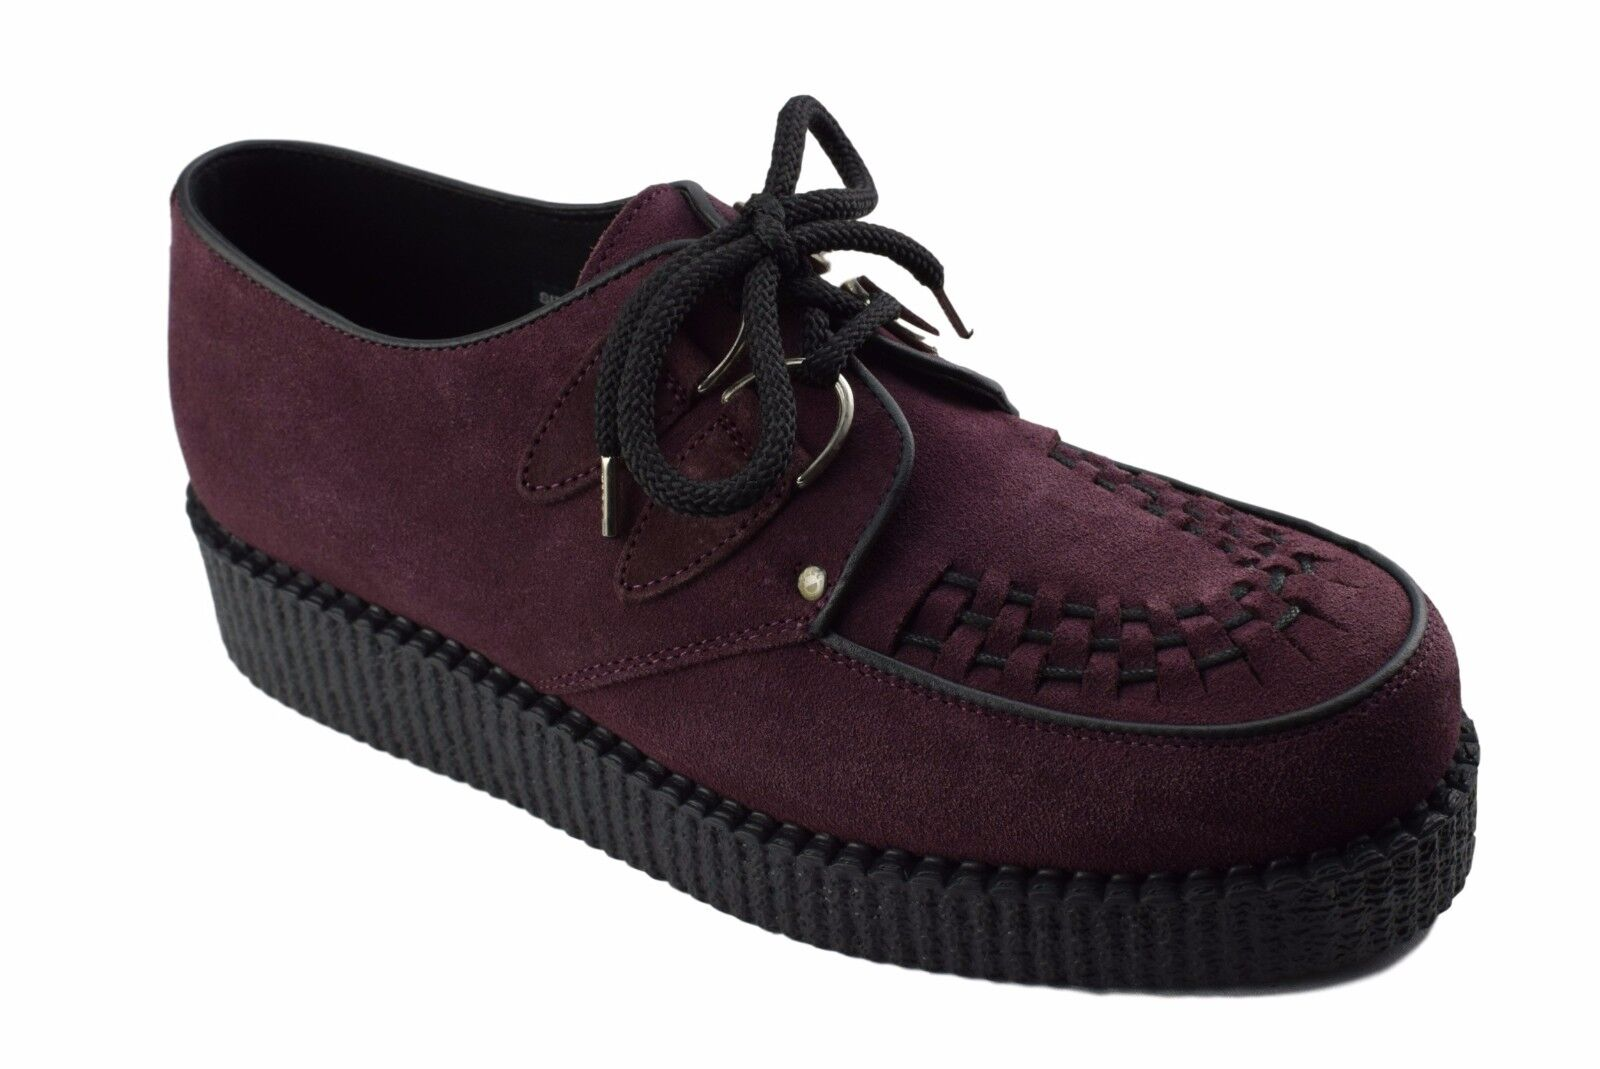 Steel Ground Schuhes Burgundy ROT Suede Creepers Low Sole D Ring Casual Sc400Z274